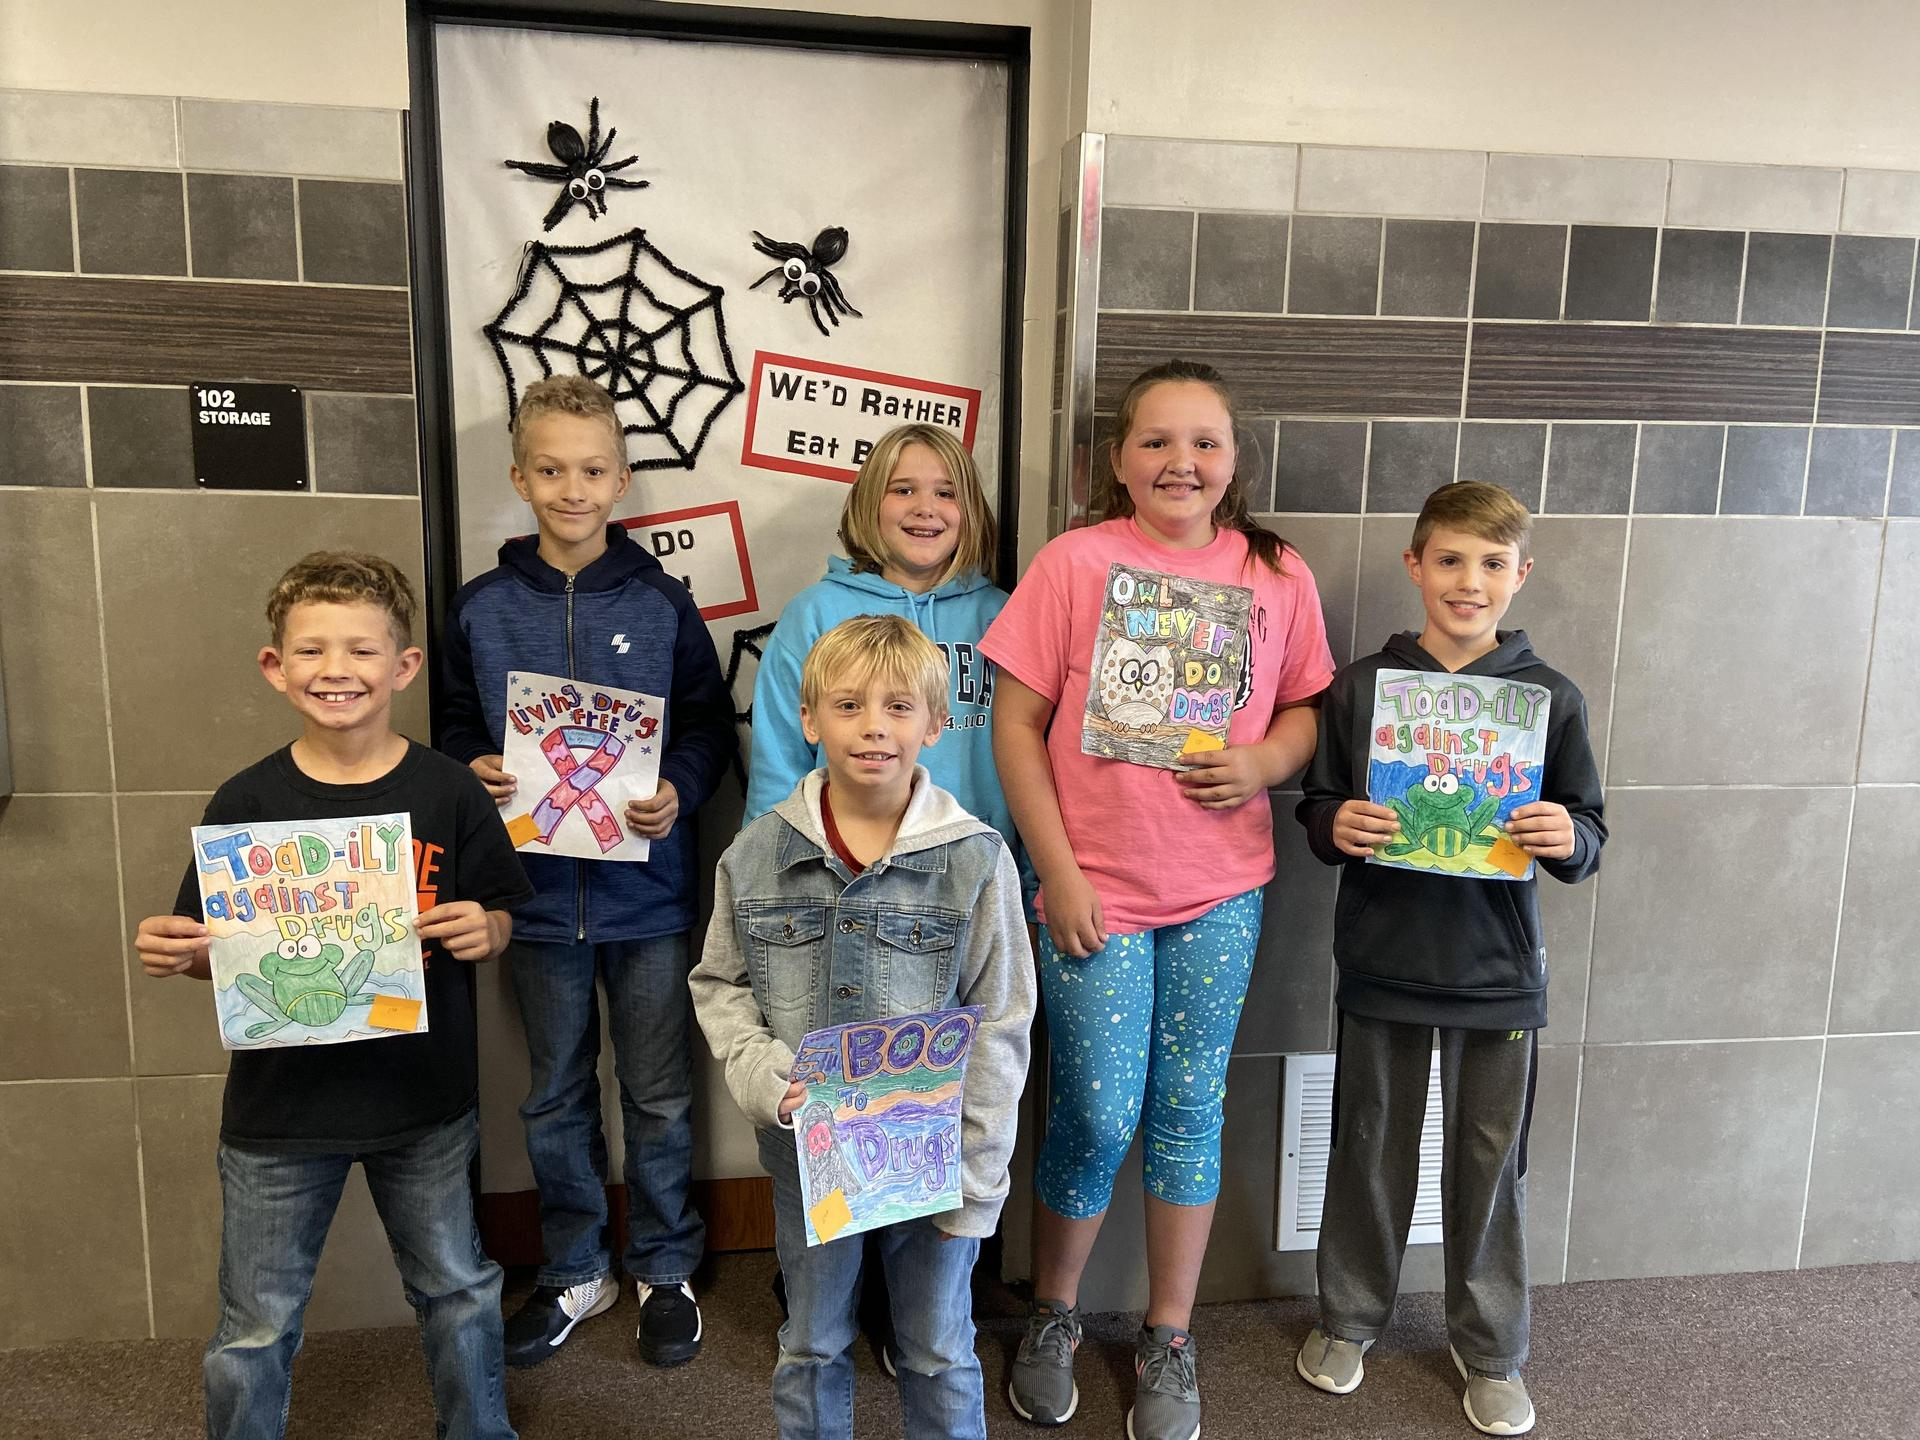 Coloring Page Winners